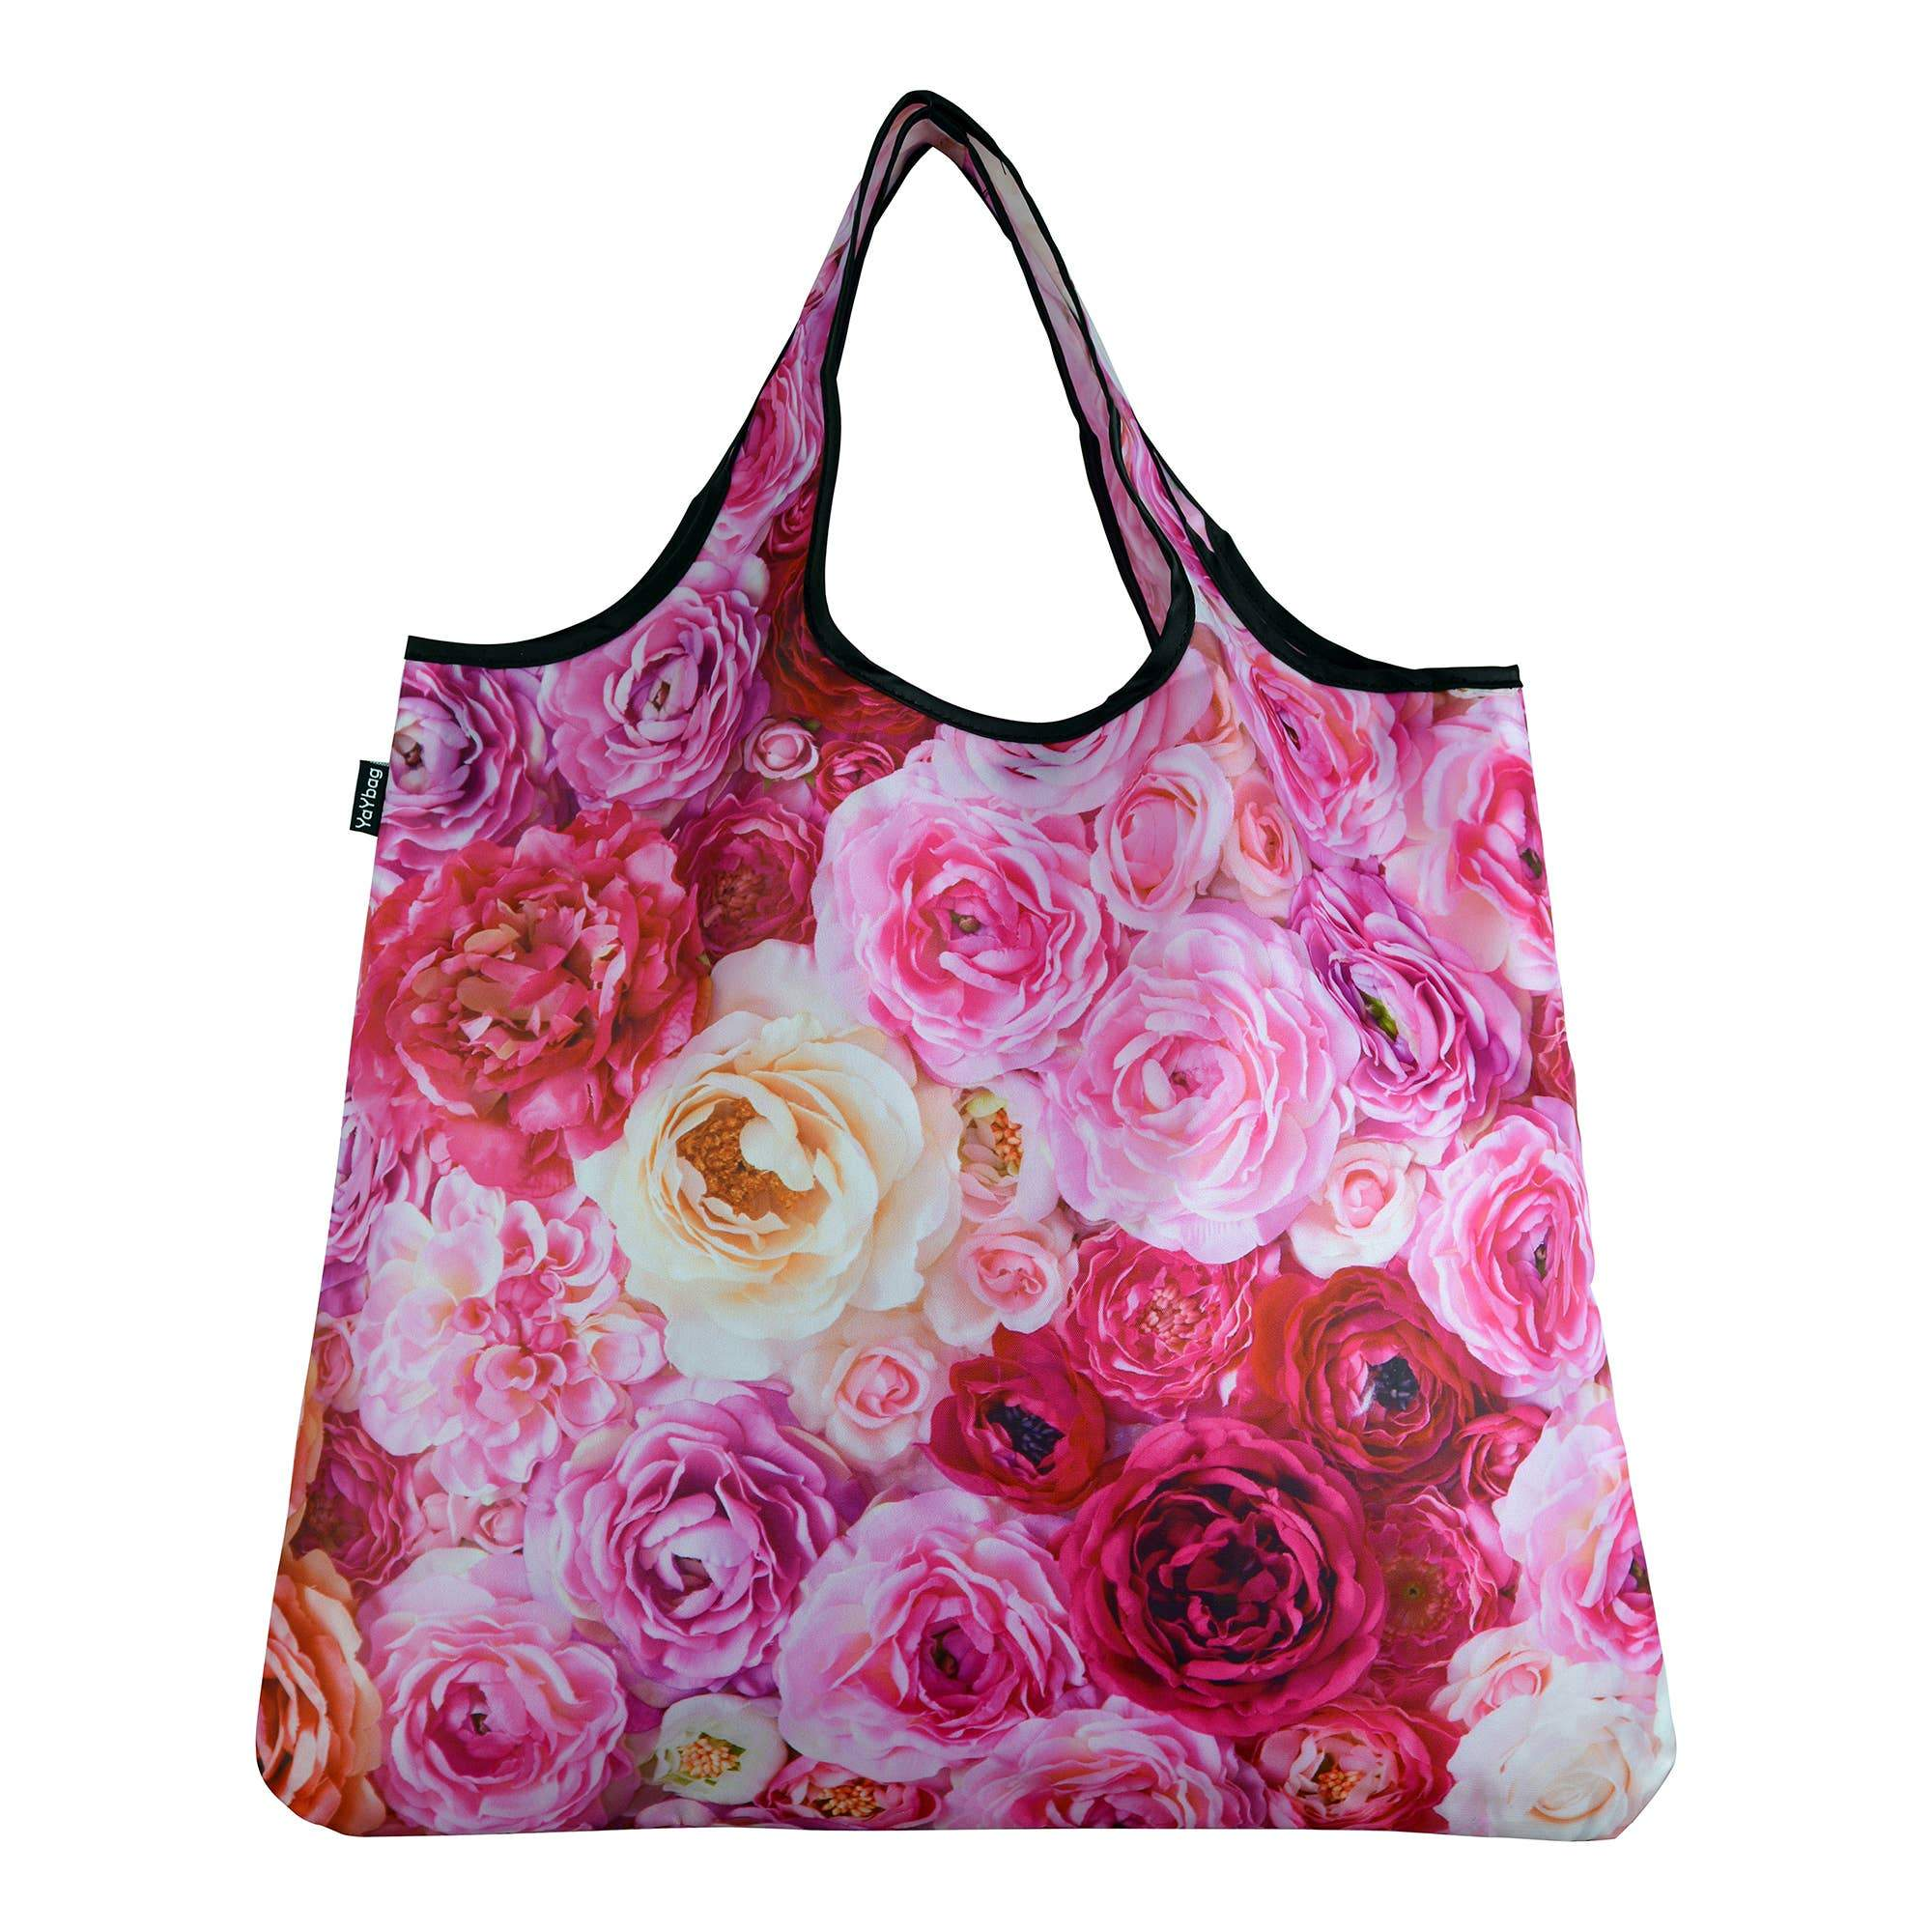 Buy YAY NOVELTY - YaYbag ORIGINAL - Pink Roses from Walking Pants Curiosities, the Most un-General Gift Store in Downtown Memphis, Tennessee!